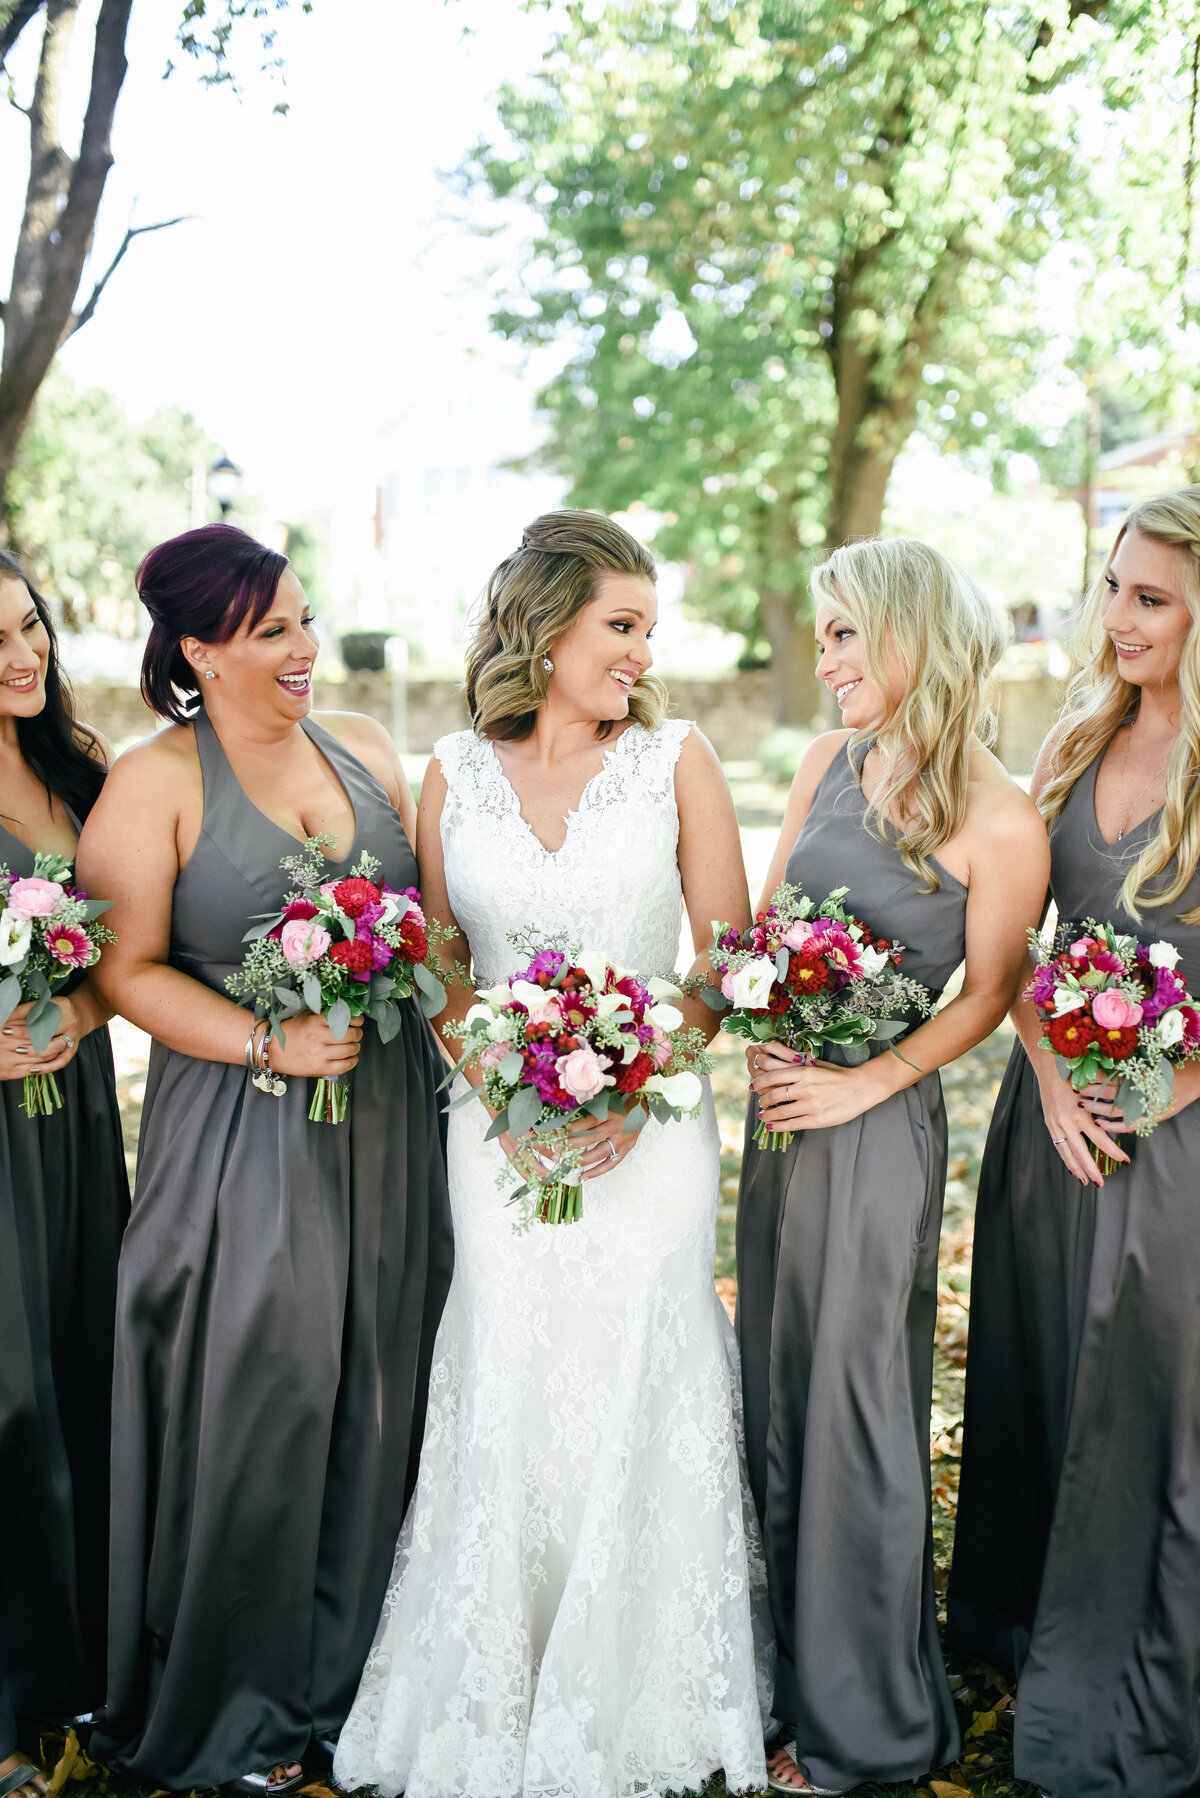 Padurean_BridalParty_074